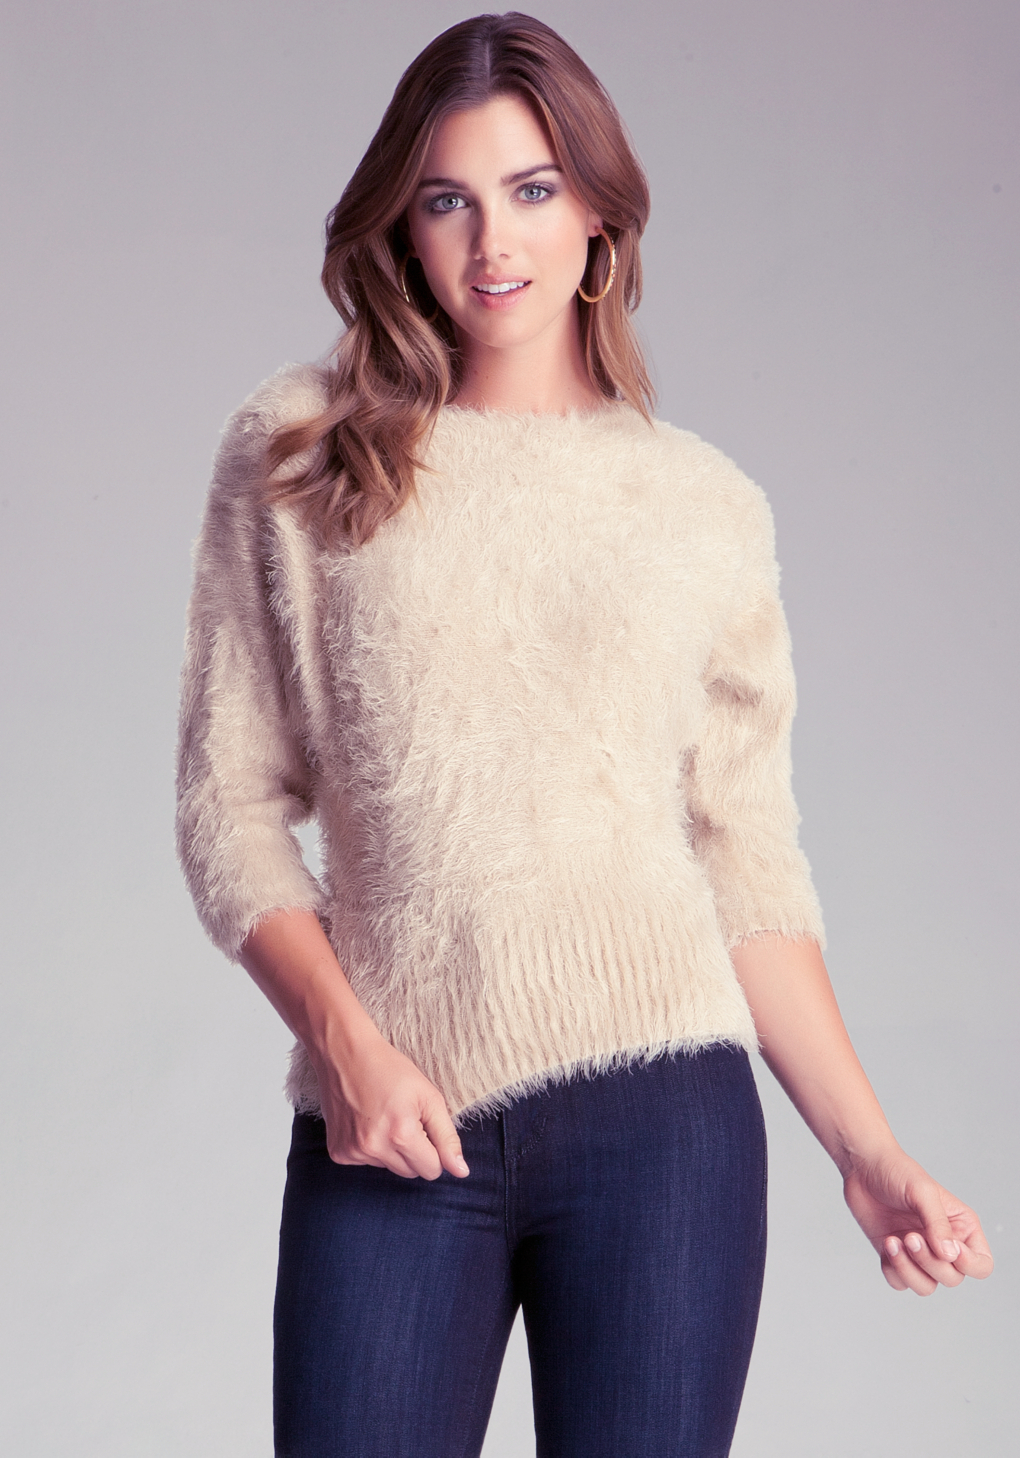 Bebe Fuzzy Yarn Sweater In Natural Lyst